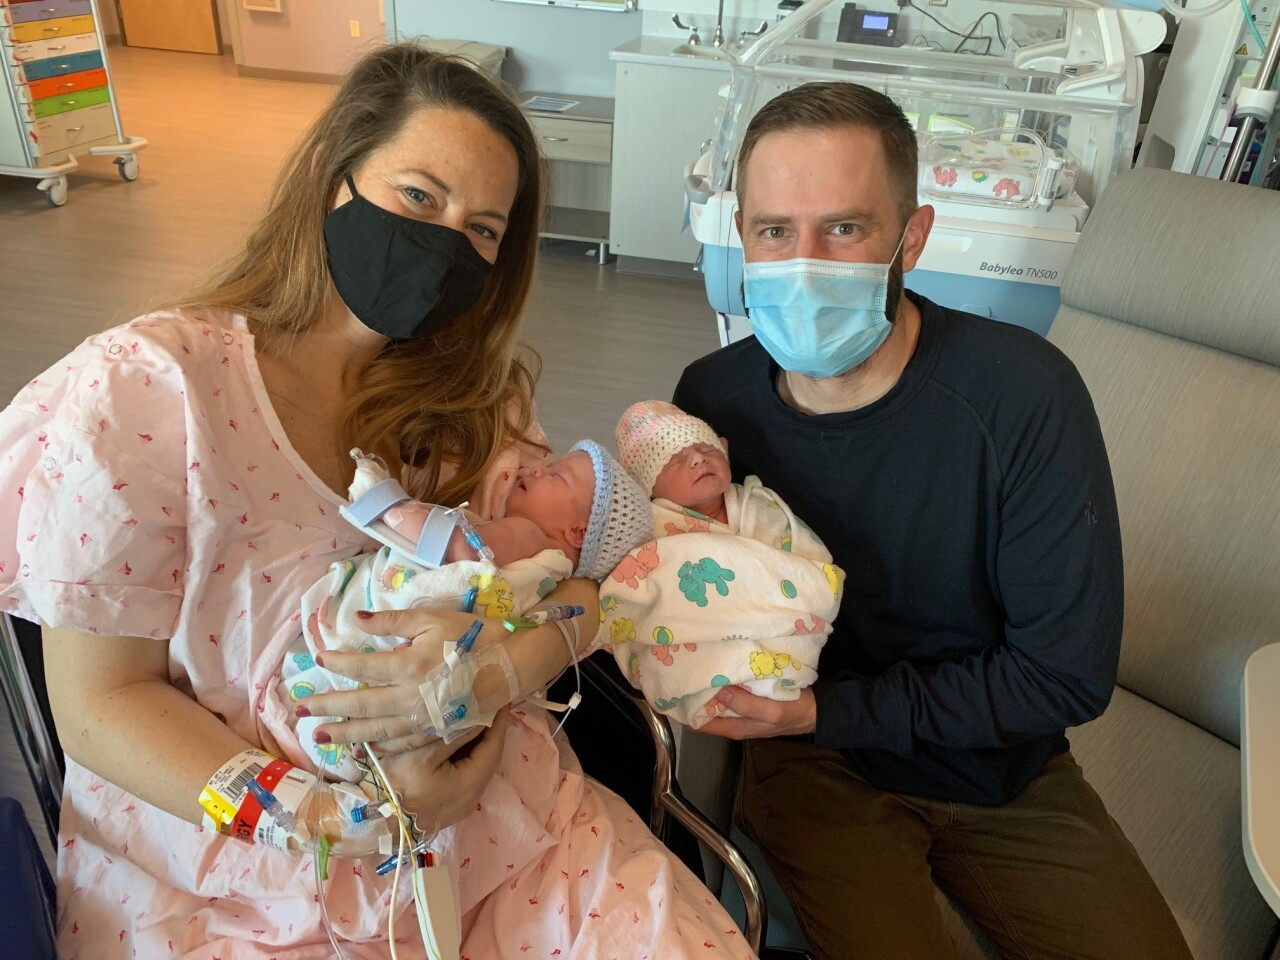 Bozeman mother, Amy May Breitmaier welcomed twins in 2020